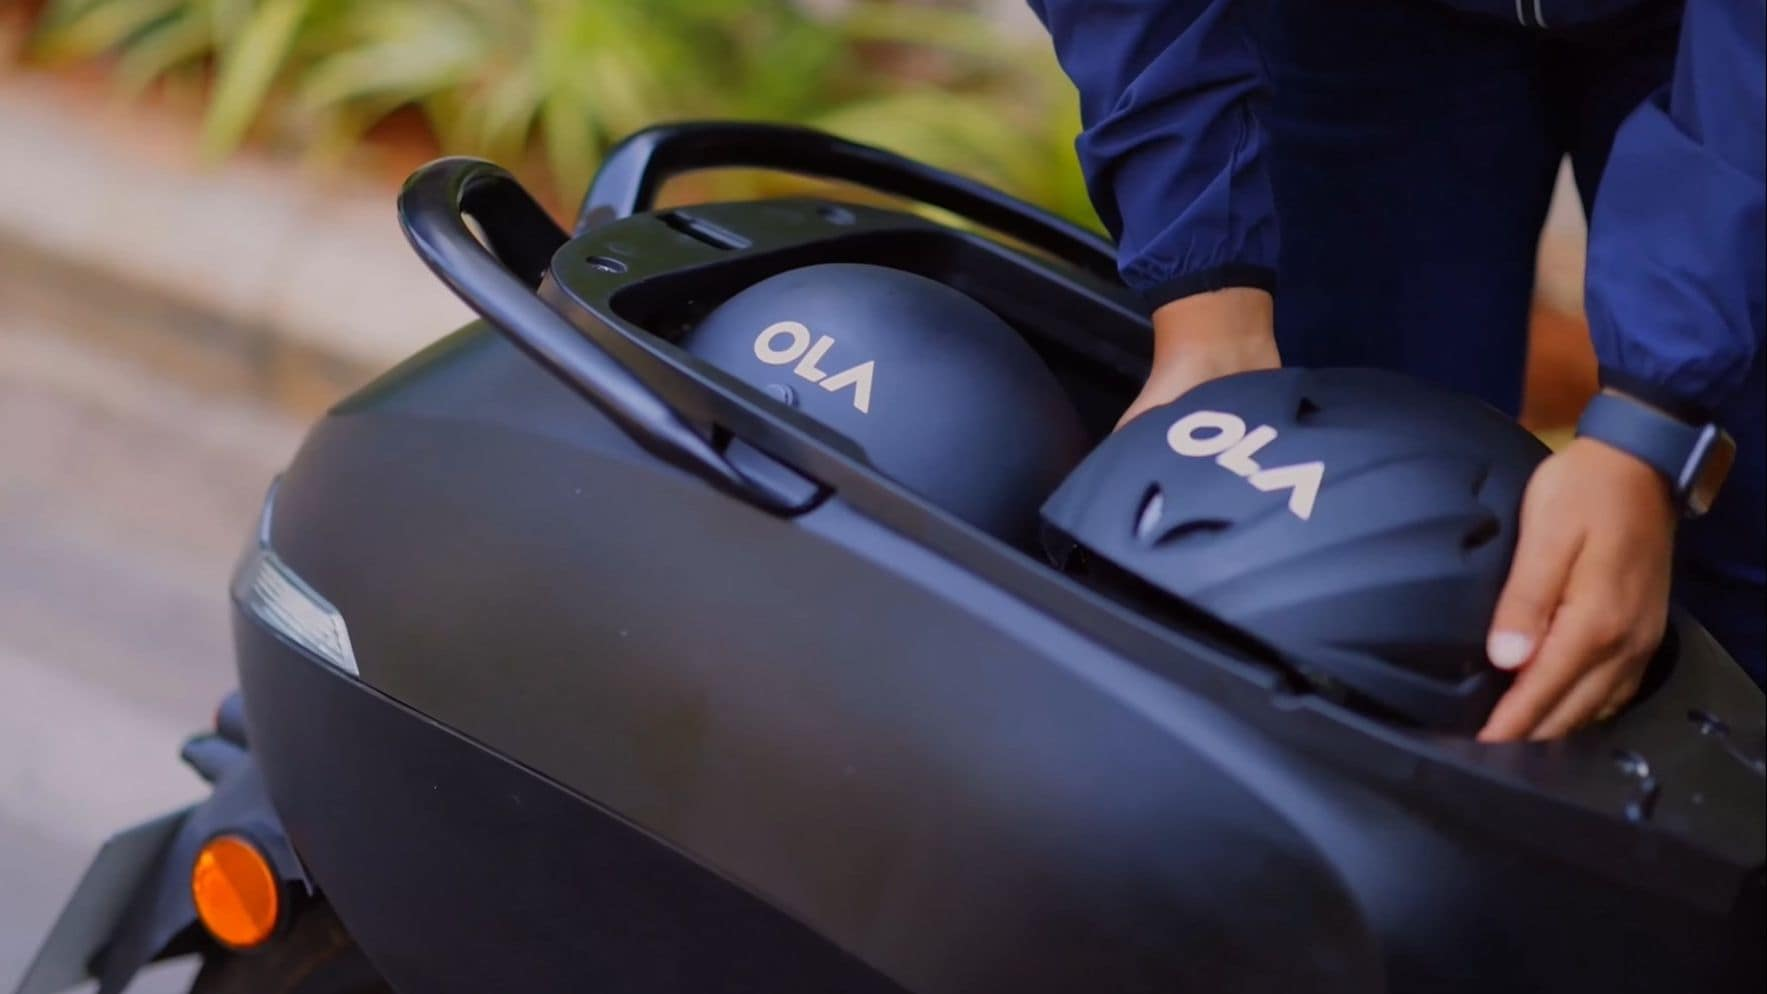 The Ola electric kickboard can store two half-helmets in its storage compartment under the seat.  Photo: Ola Electric